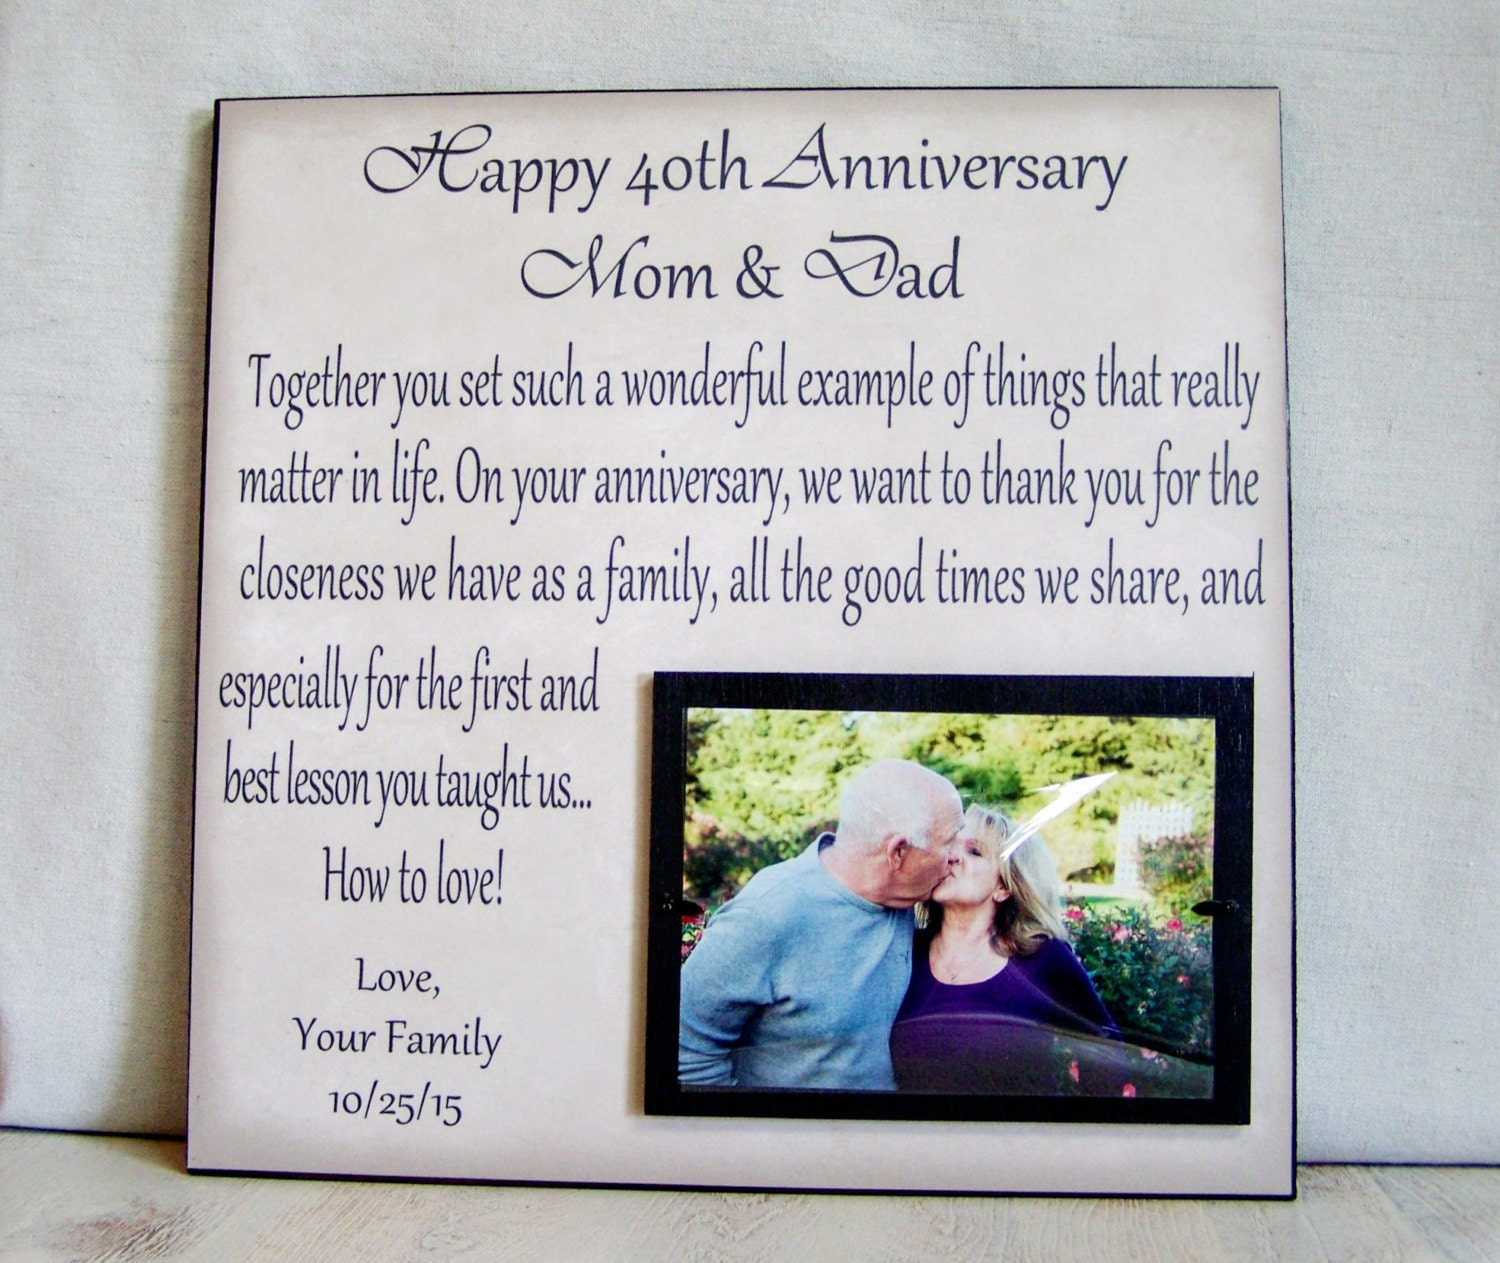 40th Wedding Anniversary Gift Ideas For Parents Australia : Ideas 30th Wedding Anniversary Gift For Parents anniversary picture ...